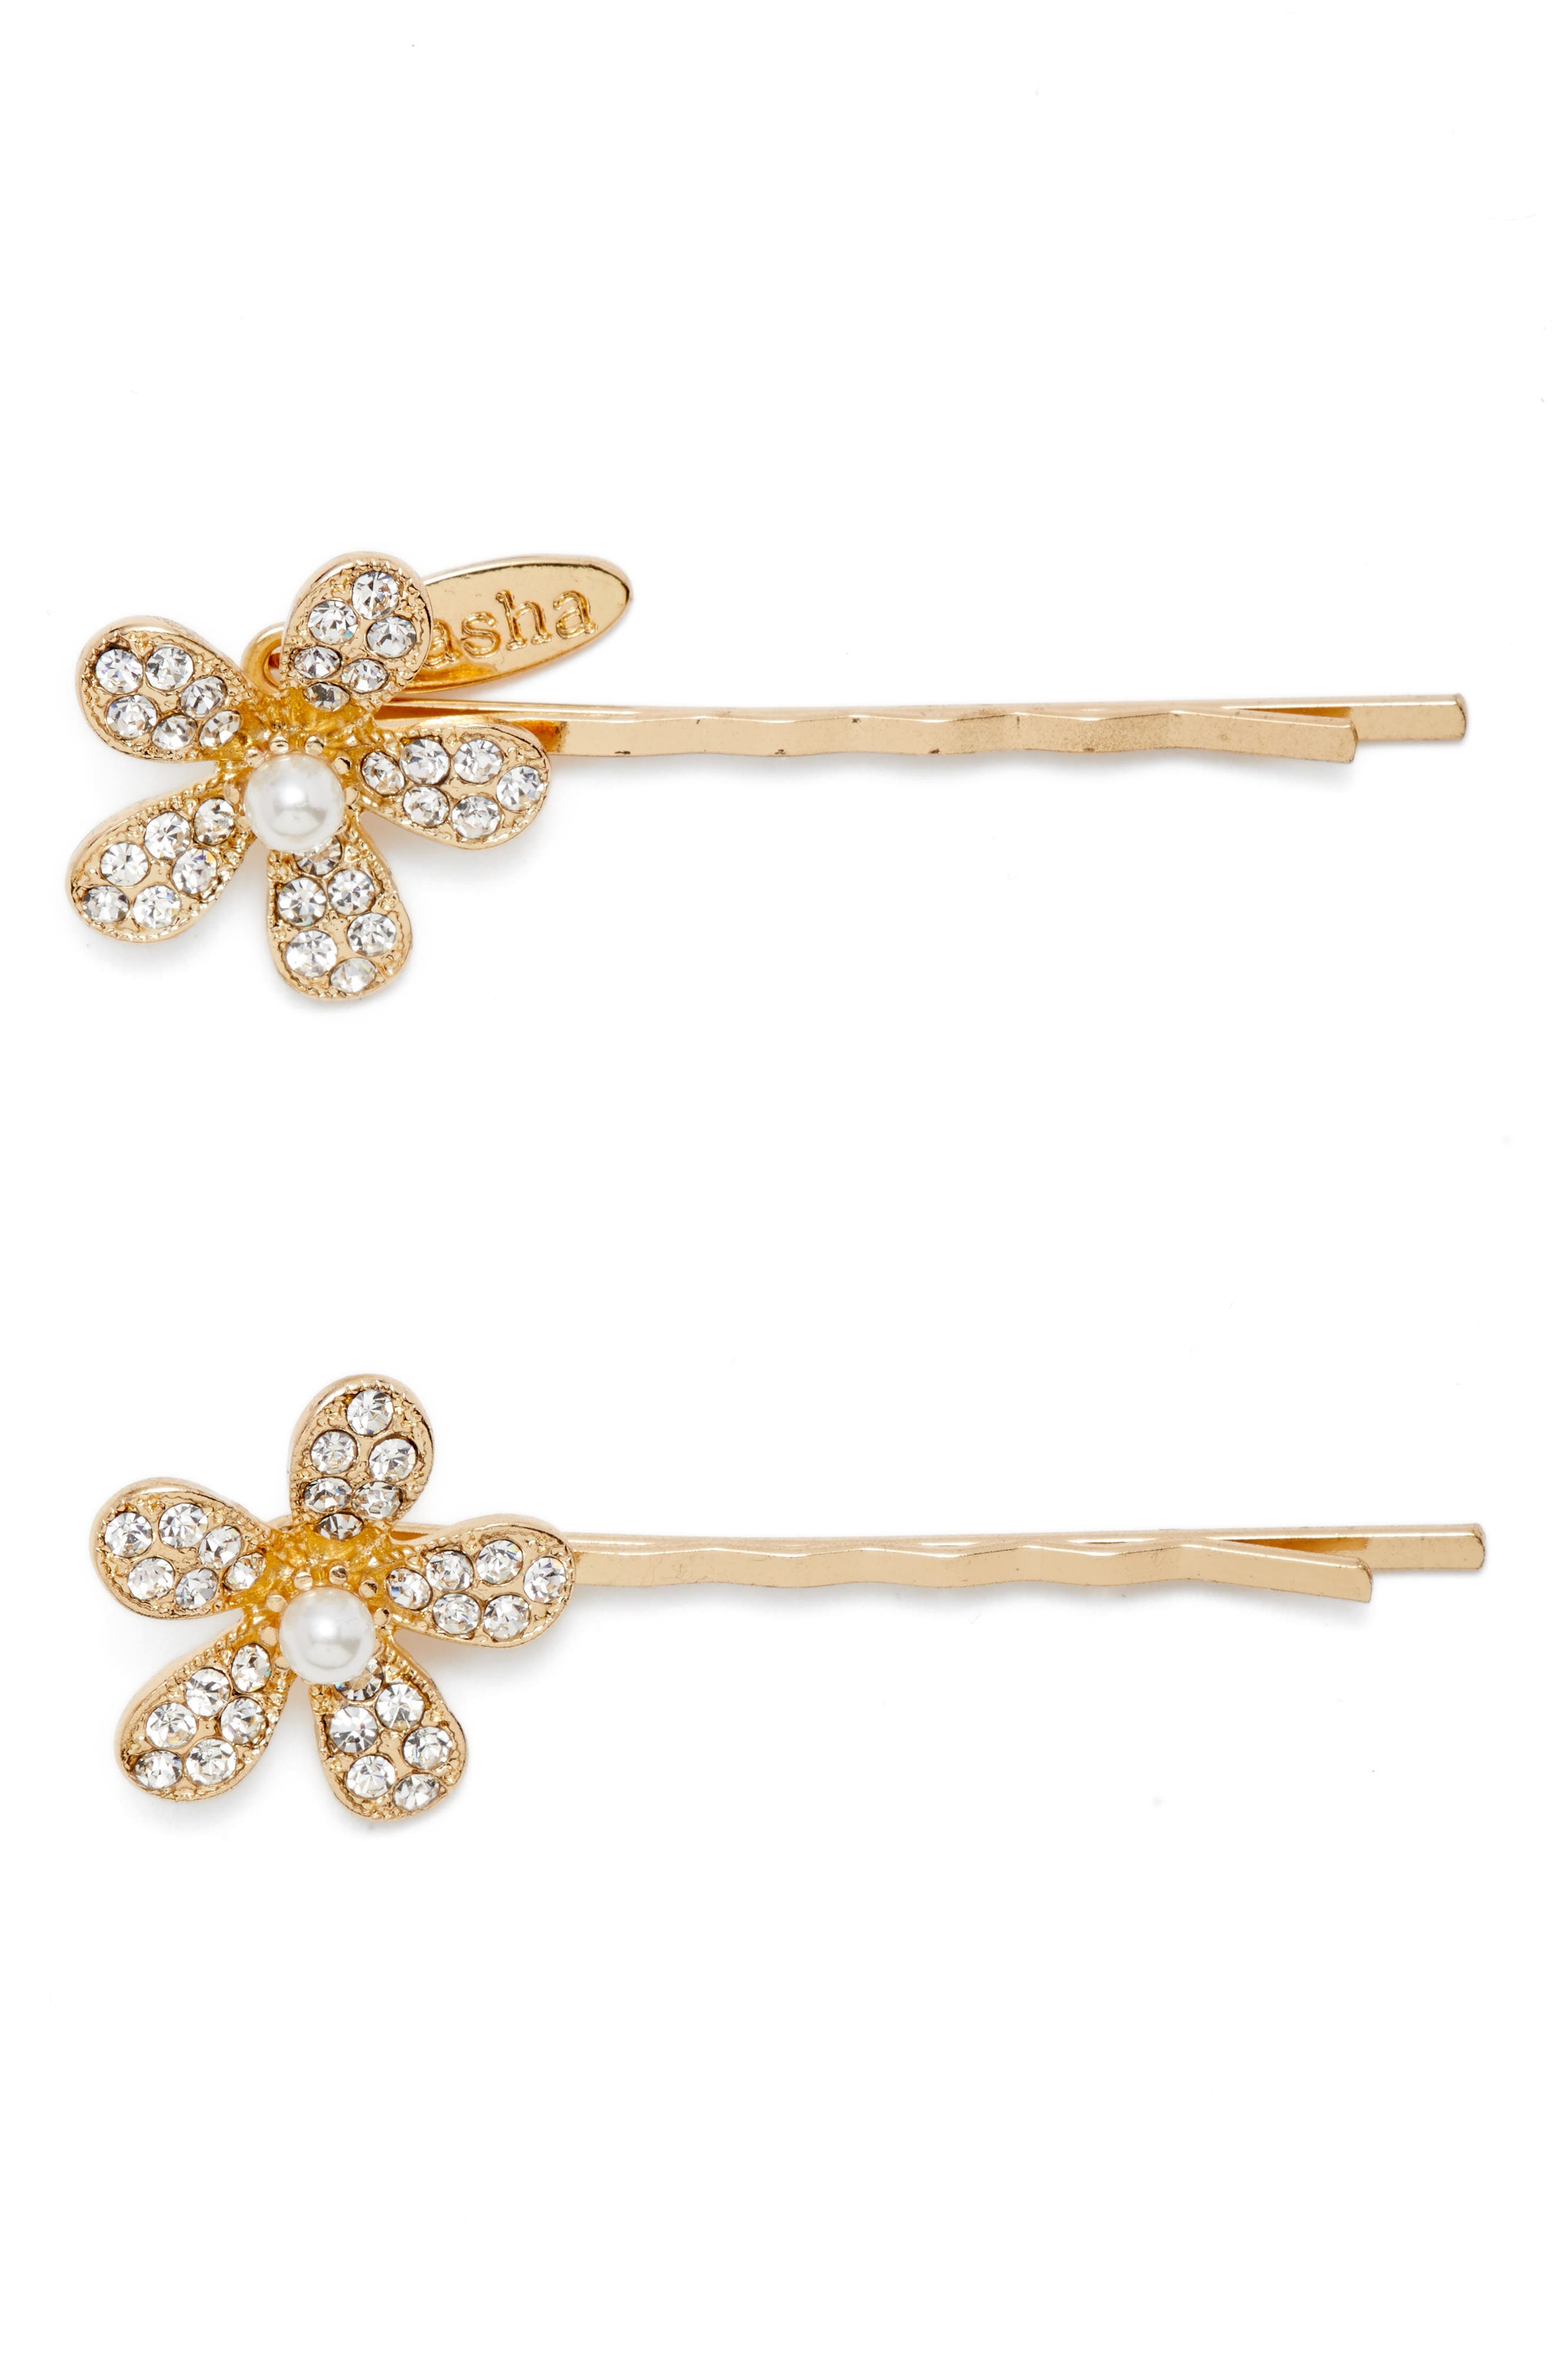 Main Image - Tasha Princess Floral Set of 2 Bobby Pins